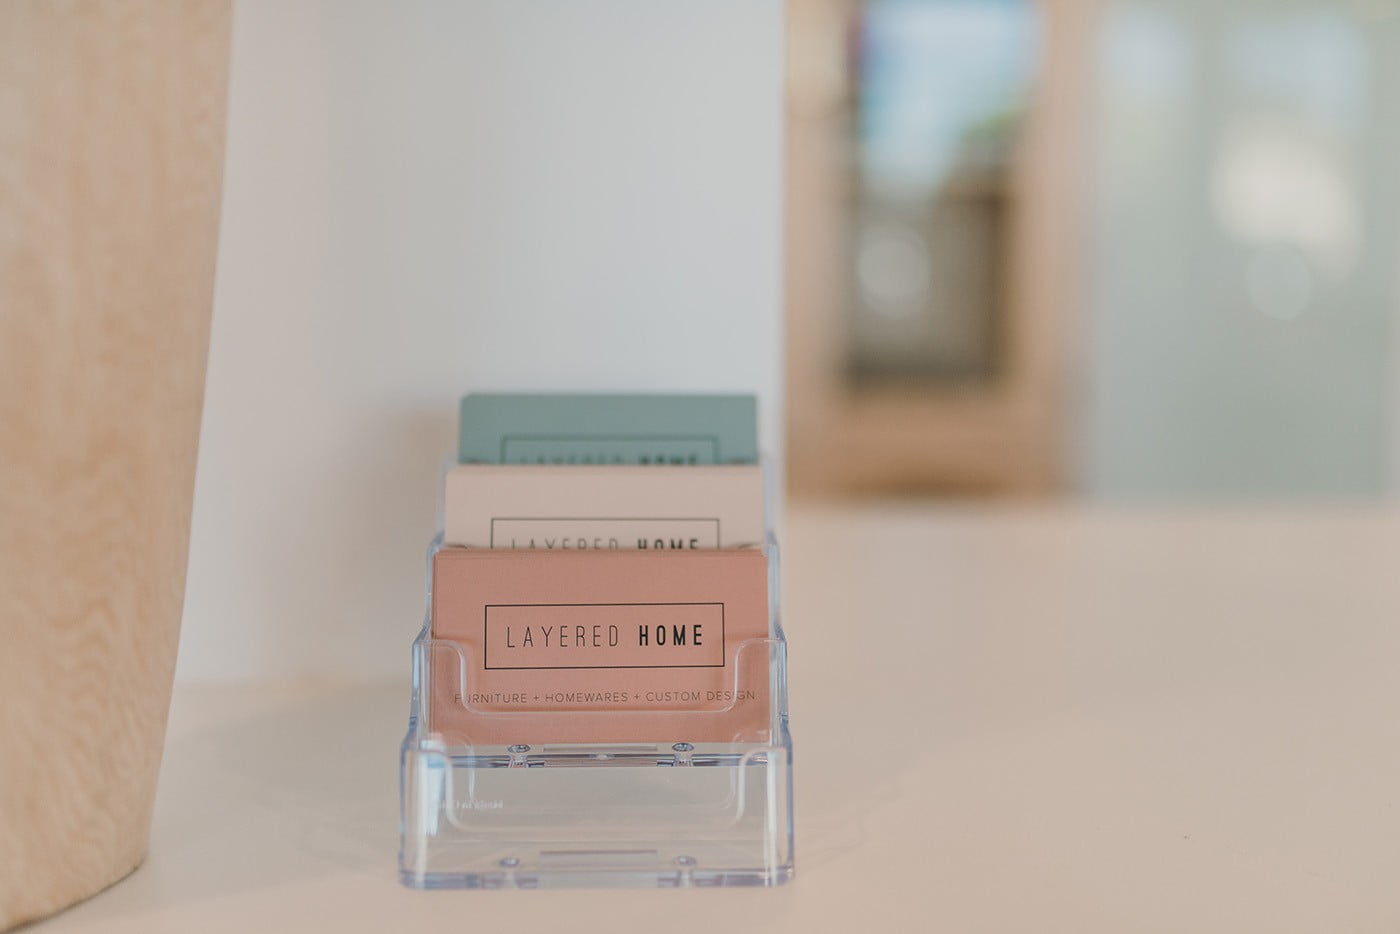 coloured business cards in a holder